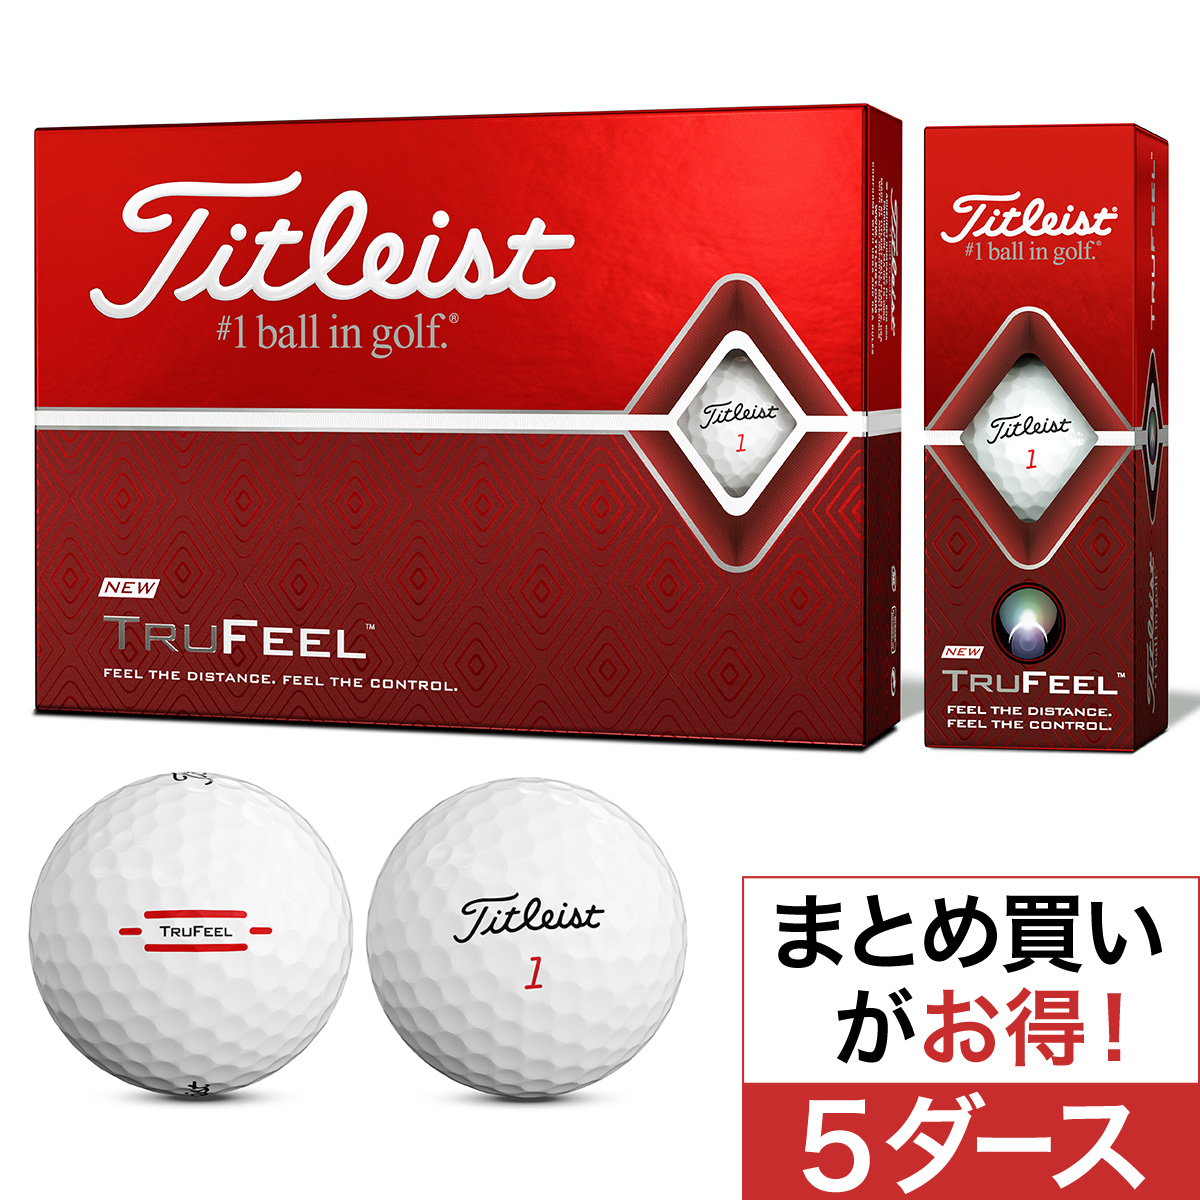 TRUFEEL ボール 5ダースセット